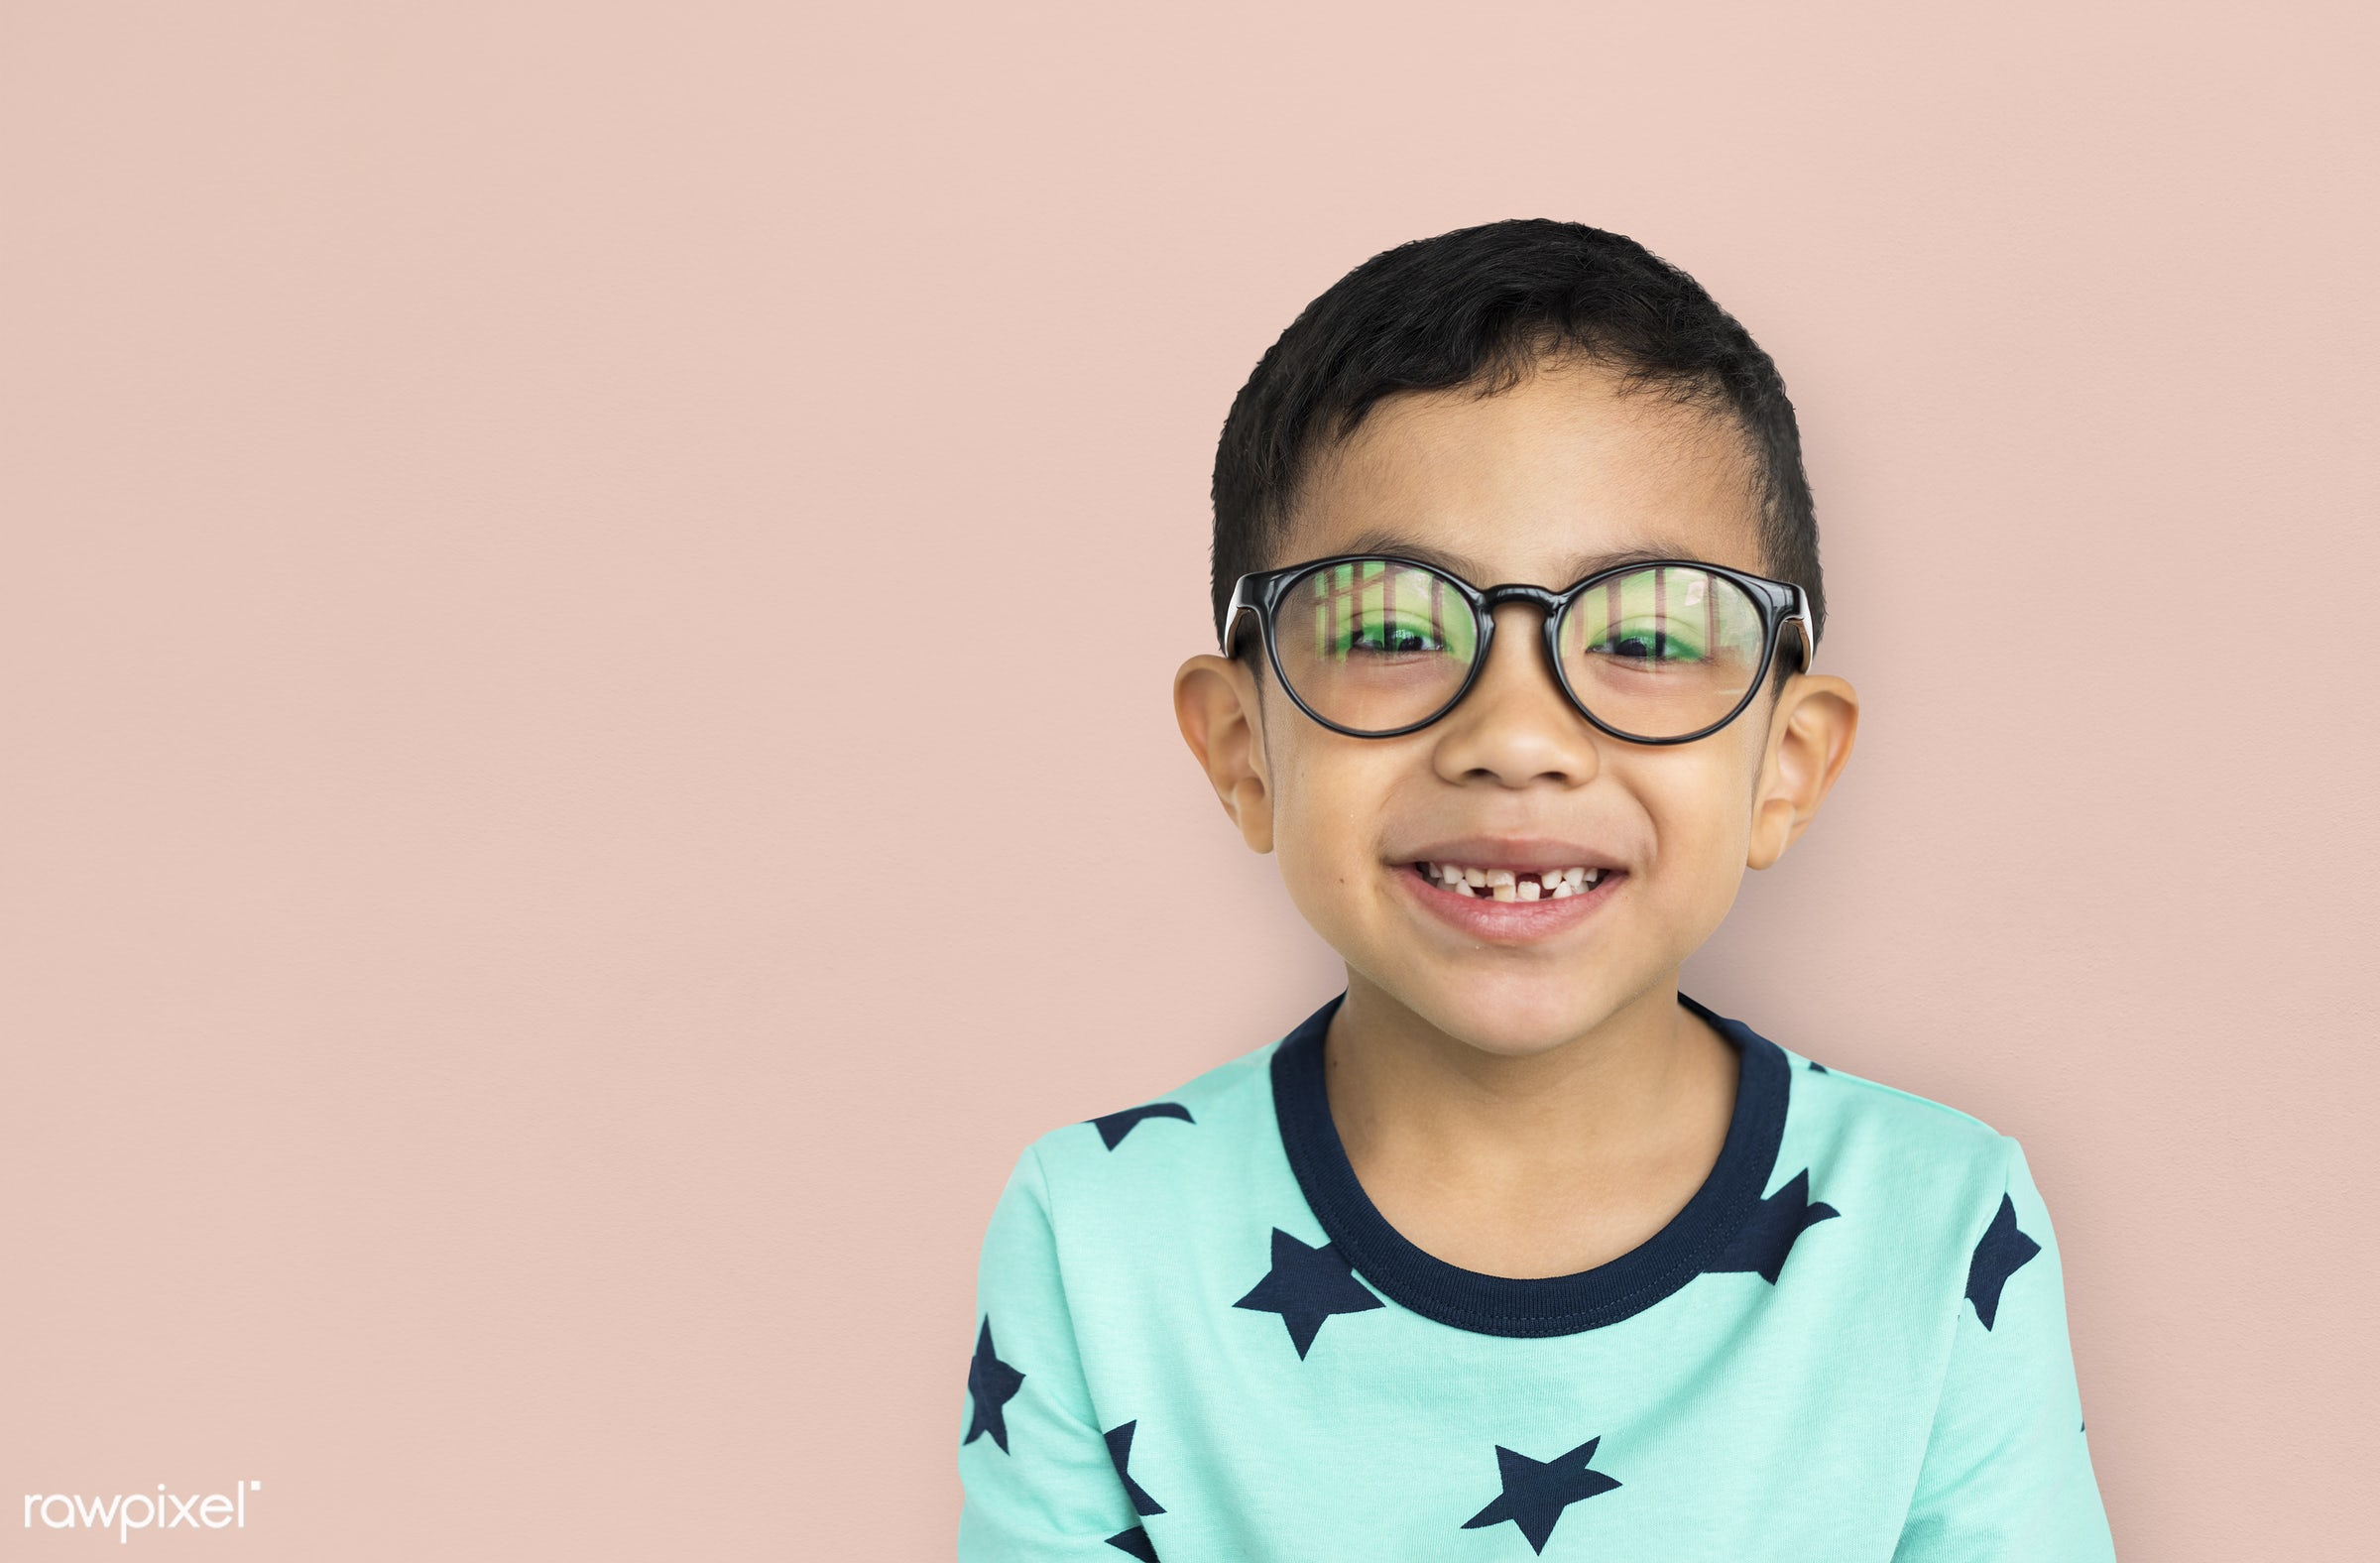 studio, expression, person, glasses, joy, little, cute, people, kid, child, joyous, happy, cheerful, isolated, excited,...